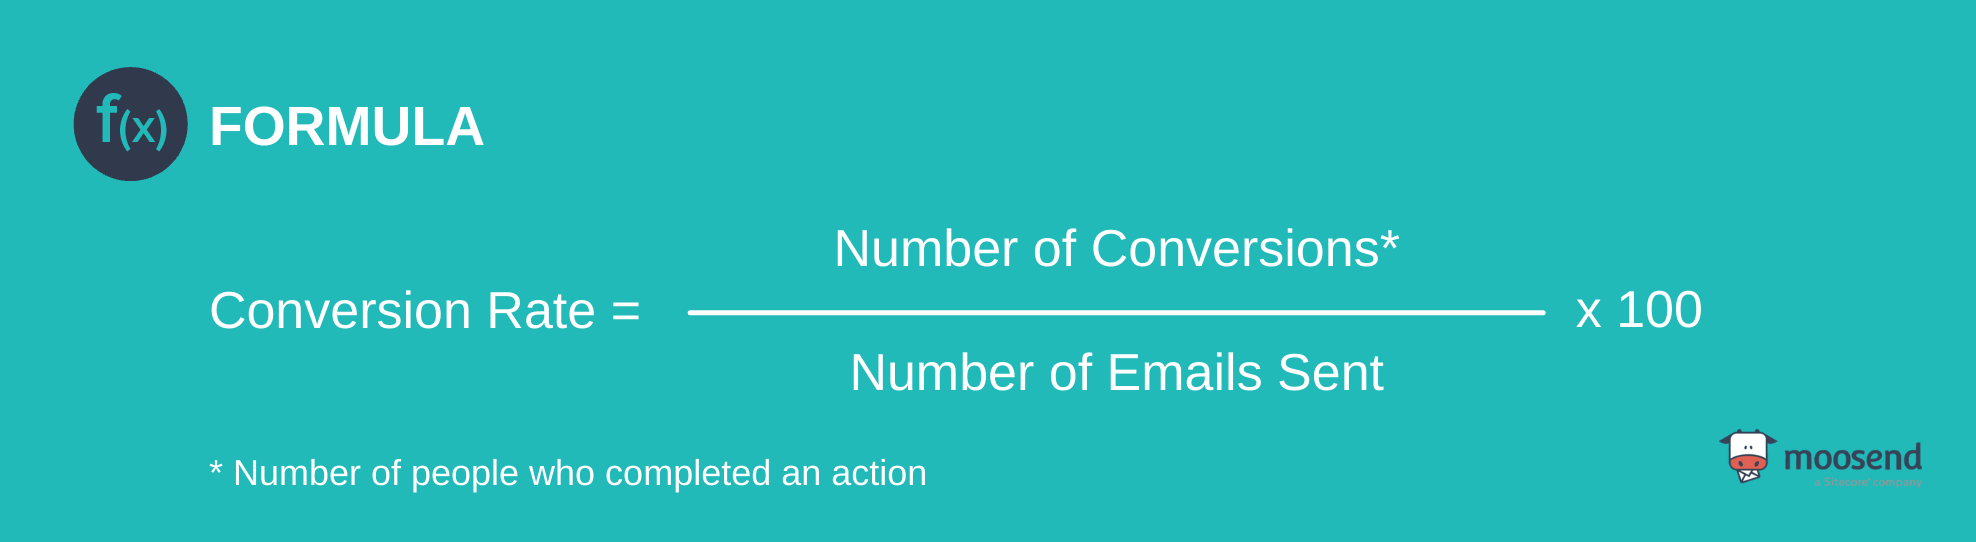 email conversion rate